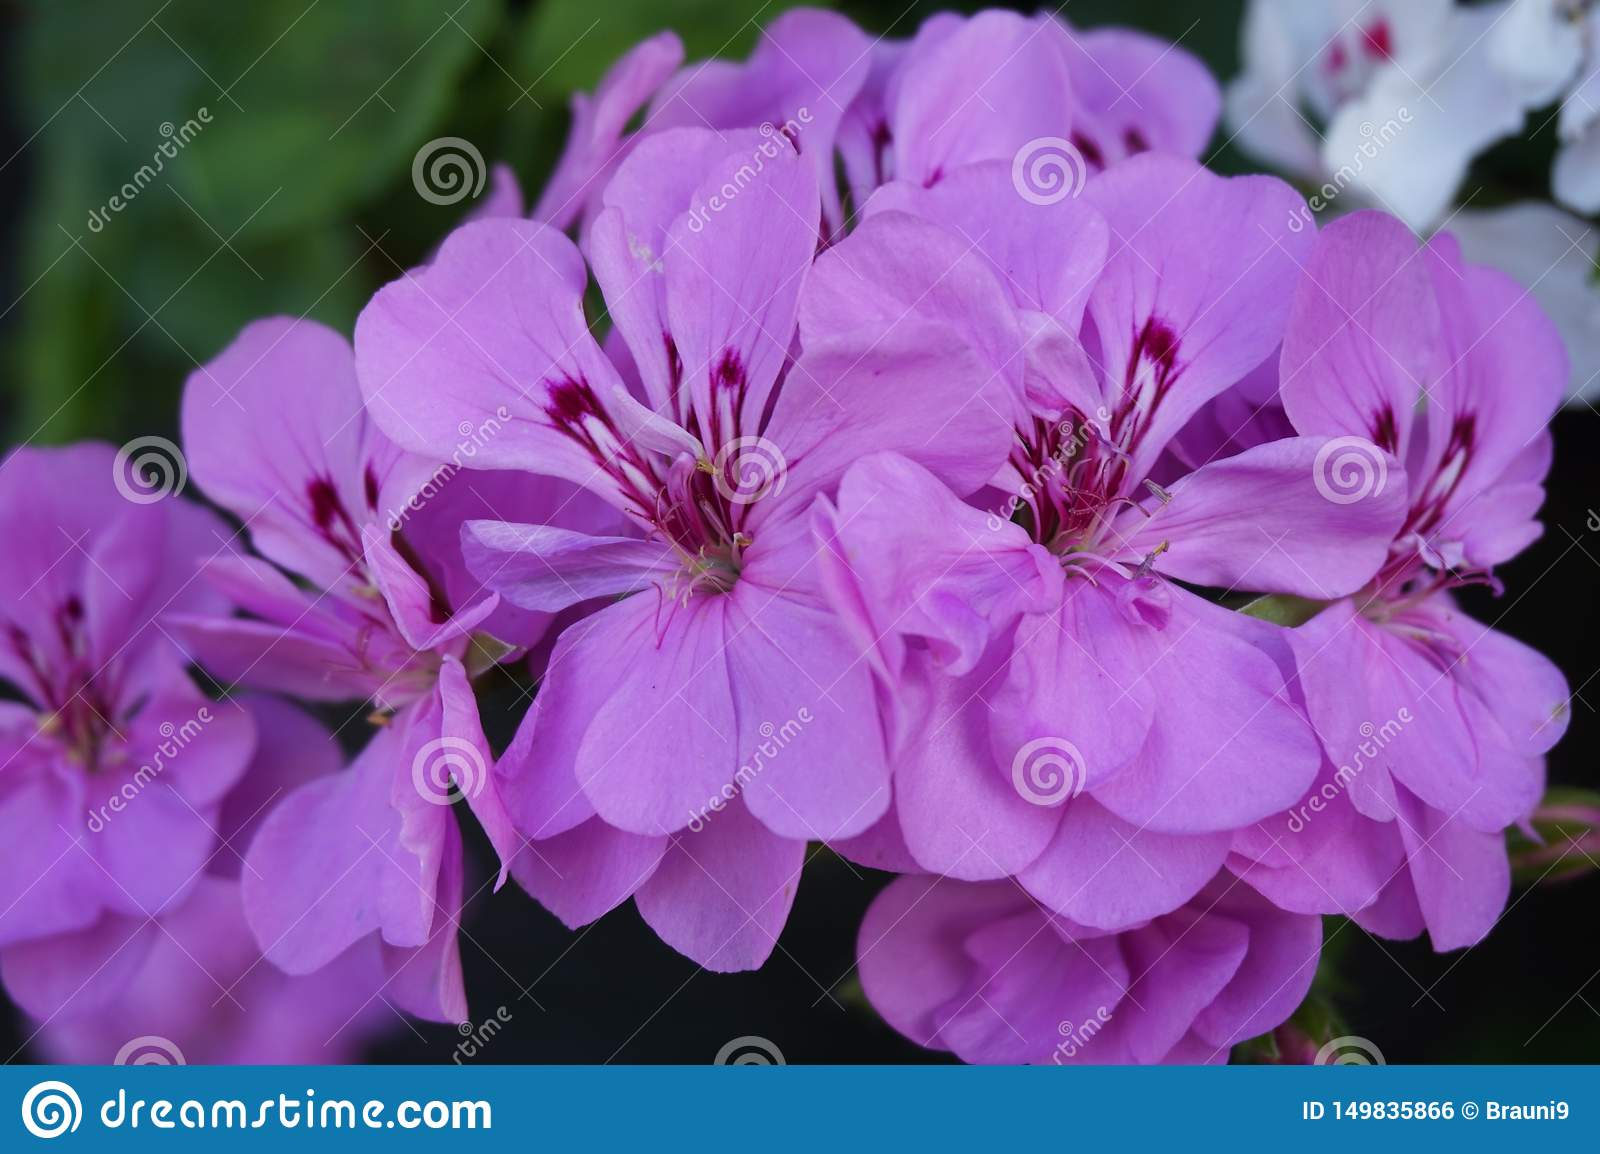 Photo of geranium group bright cerise pink flowers.